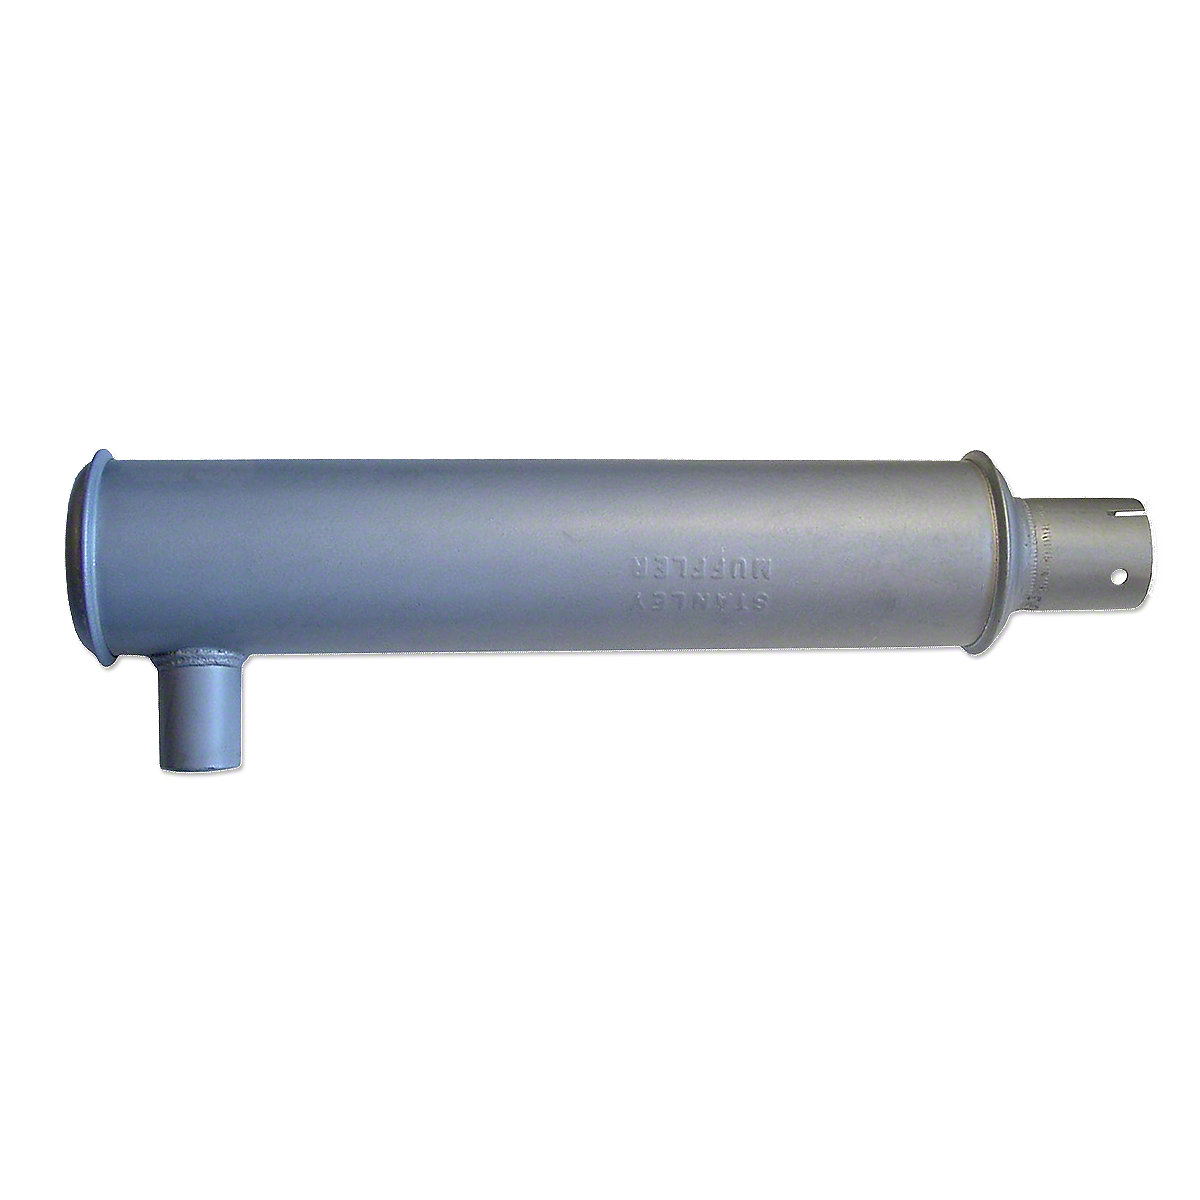 Vertical Or Horizontal Muffler For Massey Ferguson: 40, 50, Massey Harris: 50.